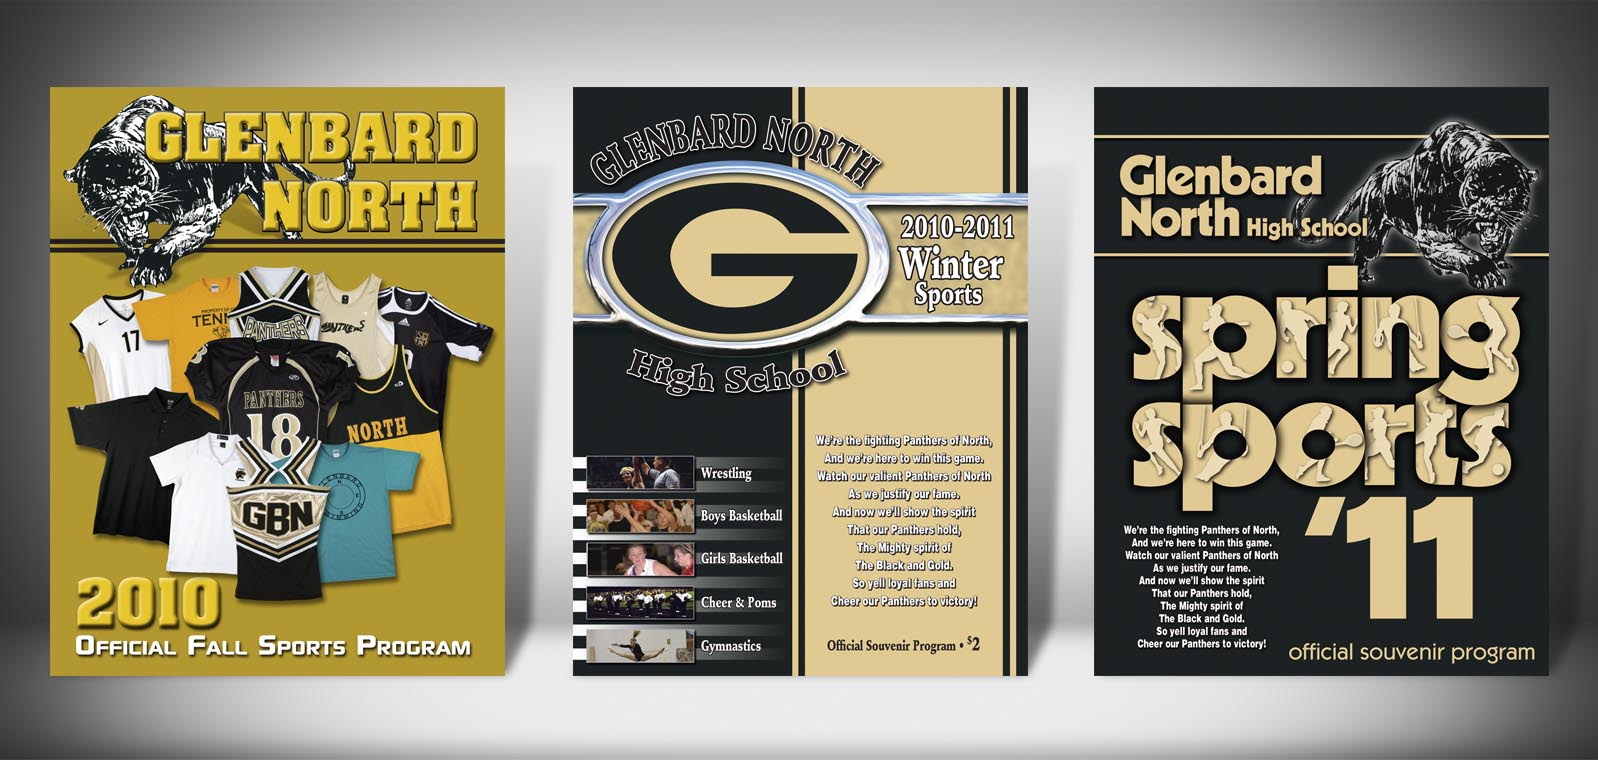 The Front Covers for the 2010-2011 Glenbard North High School Sports Program Graphic Design by Roselle Graphic Designer Controlled Color, Inc.